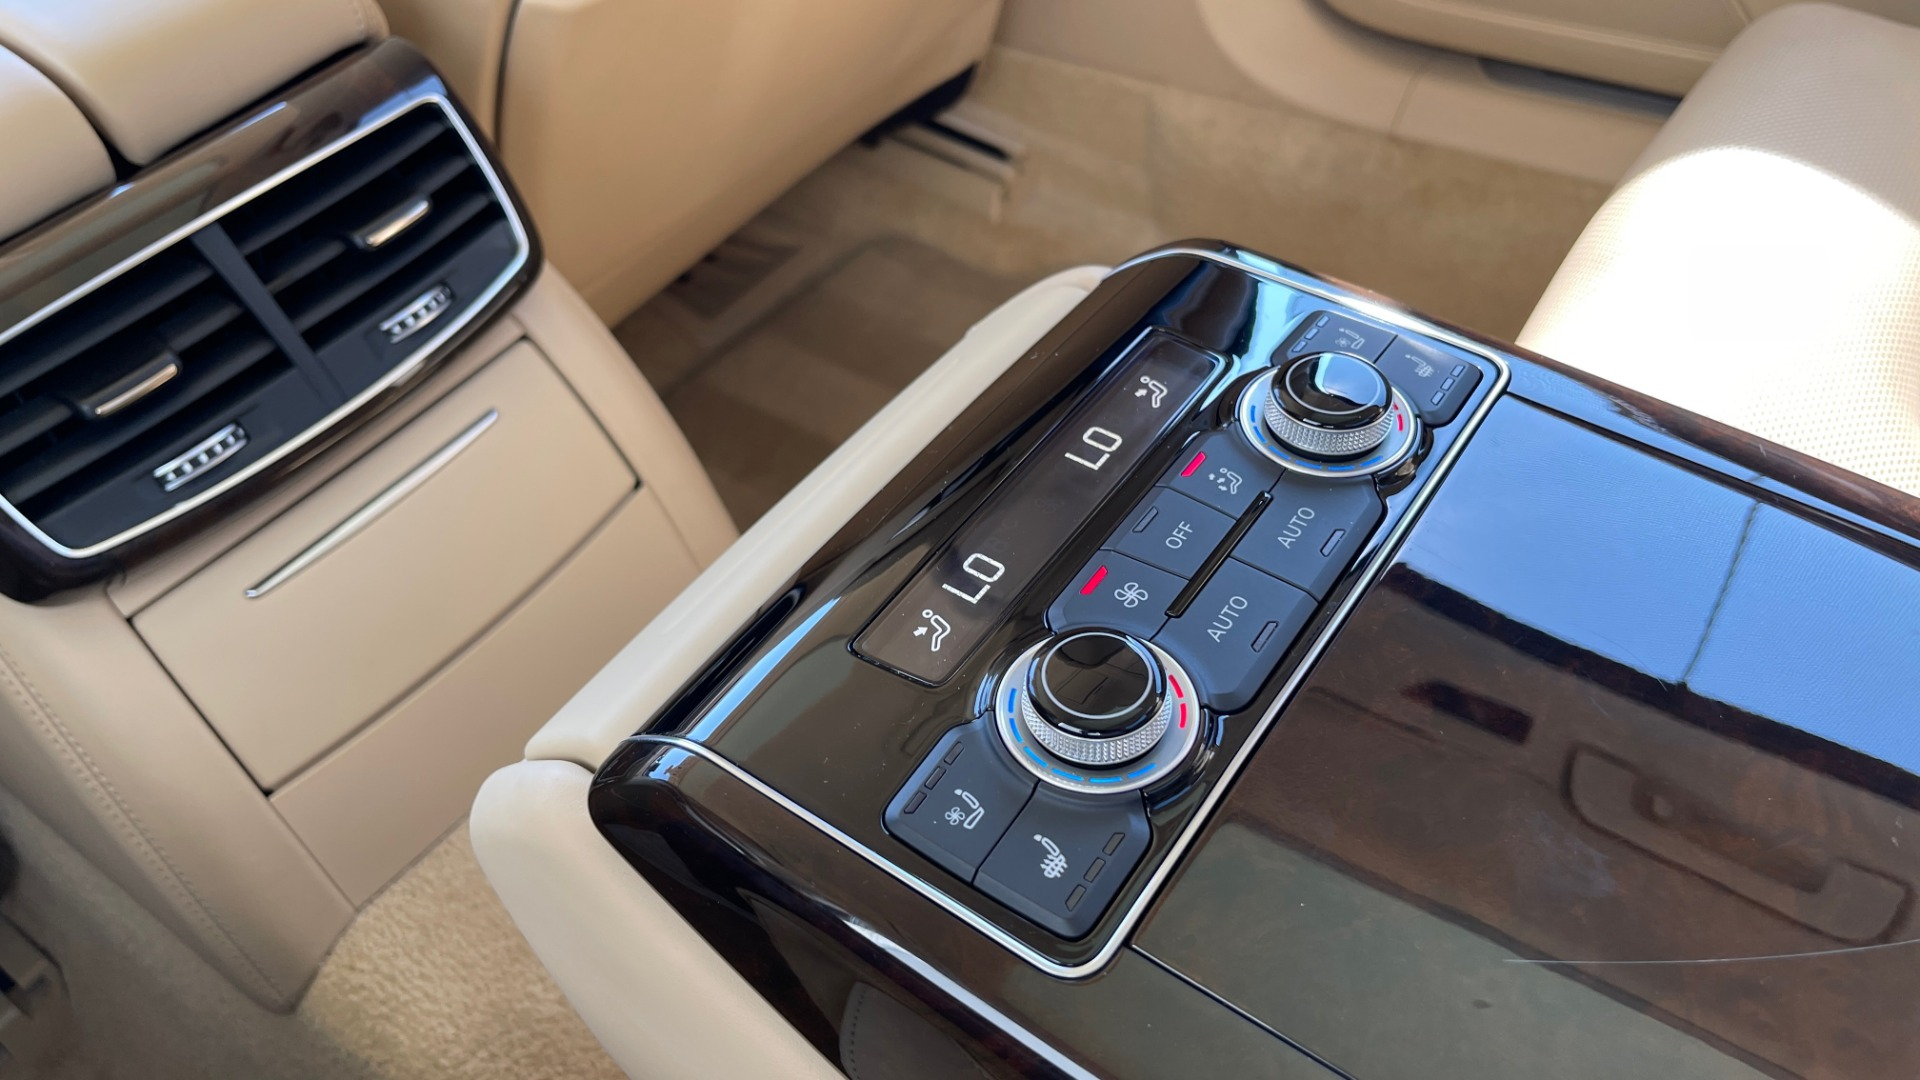 Used 2018 Audi A8 L SPORT 4.0T / EXECUTIVE PKG / NAV / BOSE / SUNROOF / REARVIEW for sale Sold at Formula Imports in Charlotte NC 28227 69